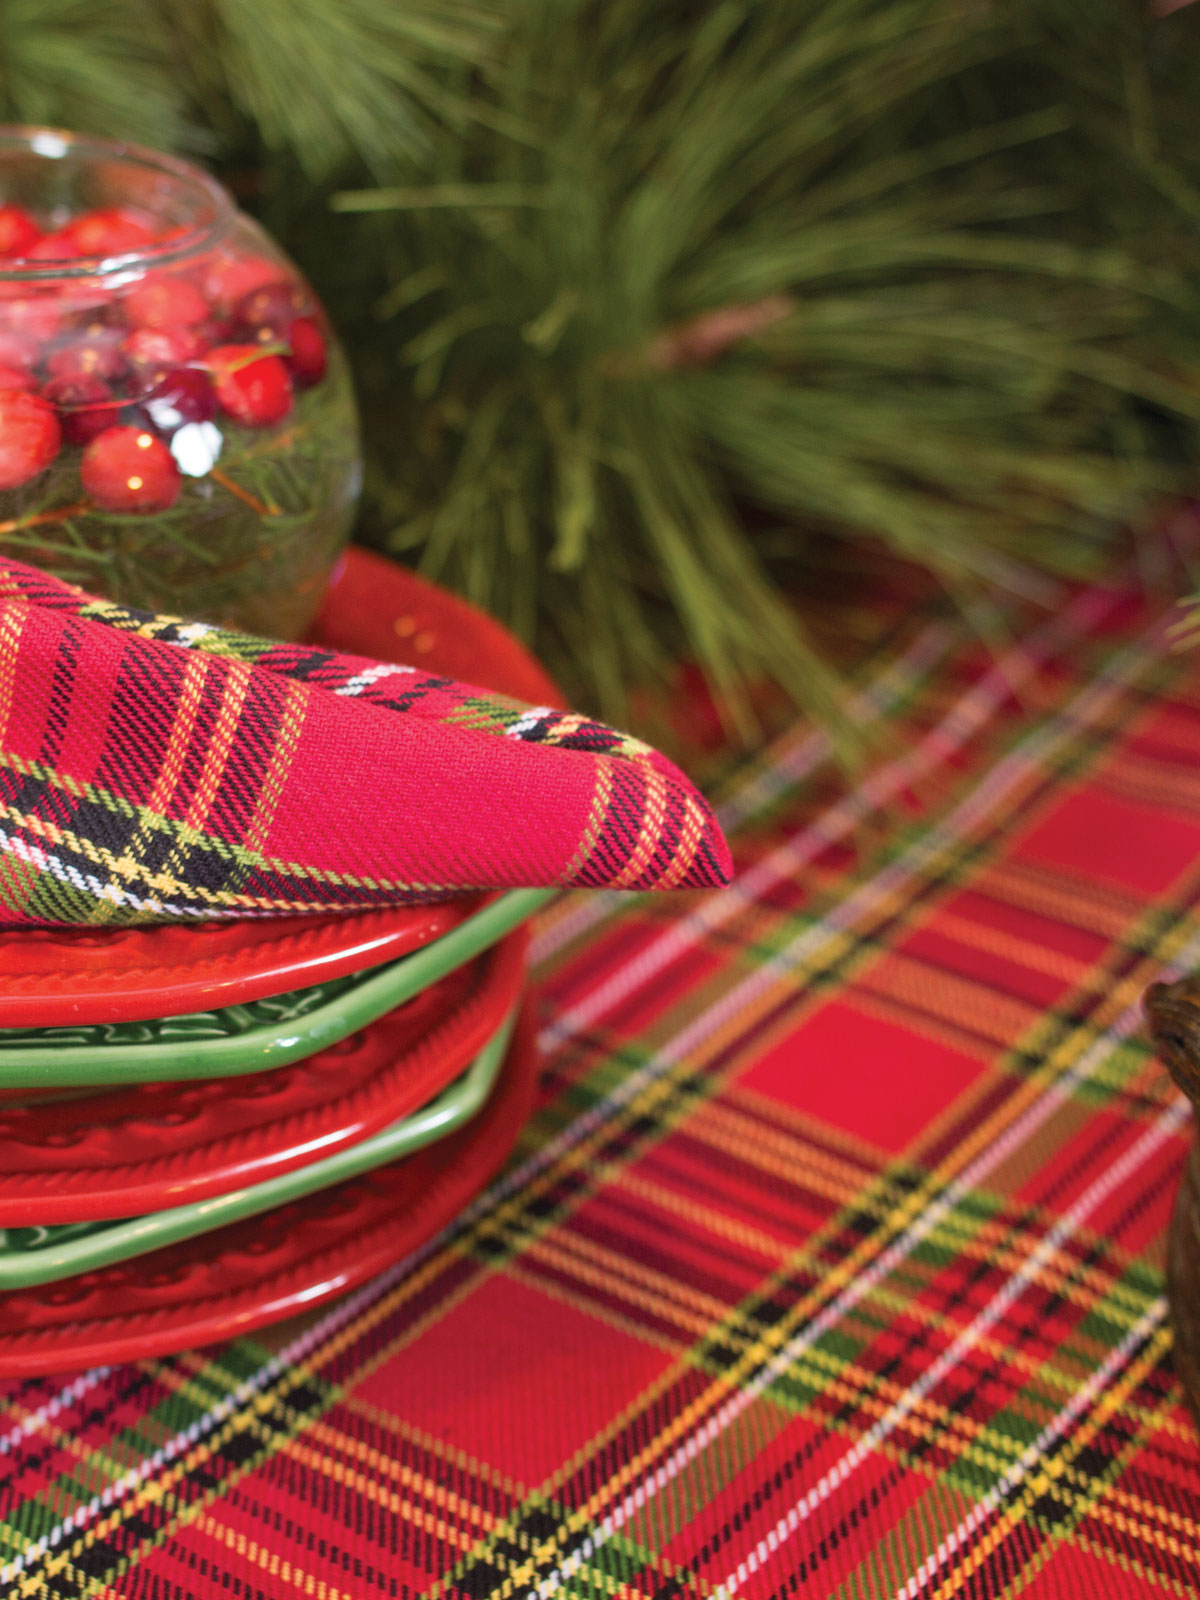 April Cornell Bedding Tartan Plaid Tablecloth | Your Home, Christmas Forever ...